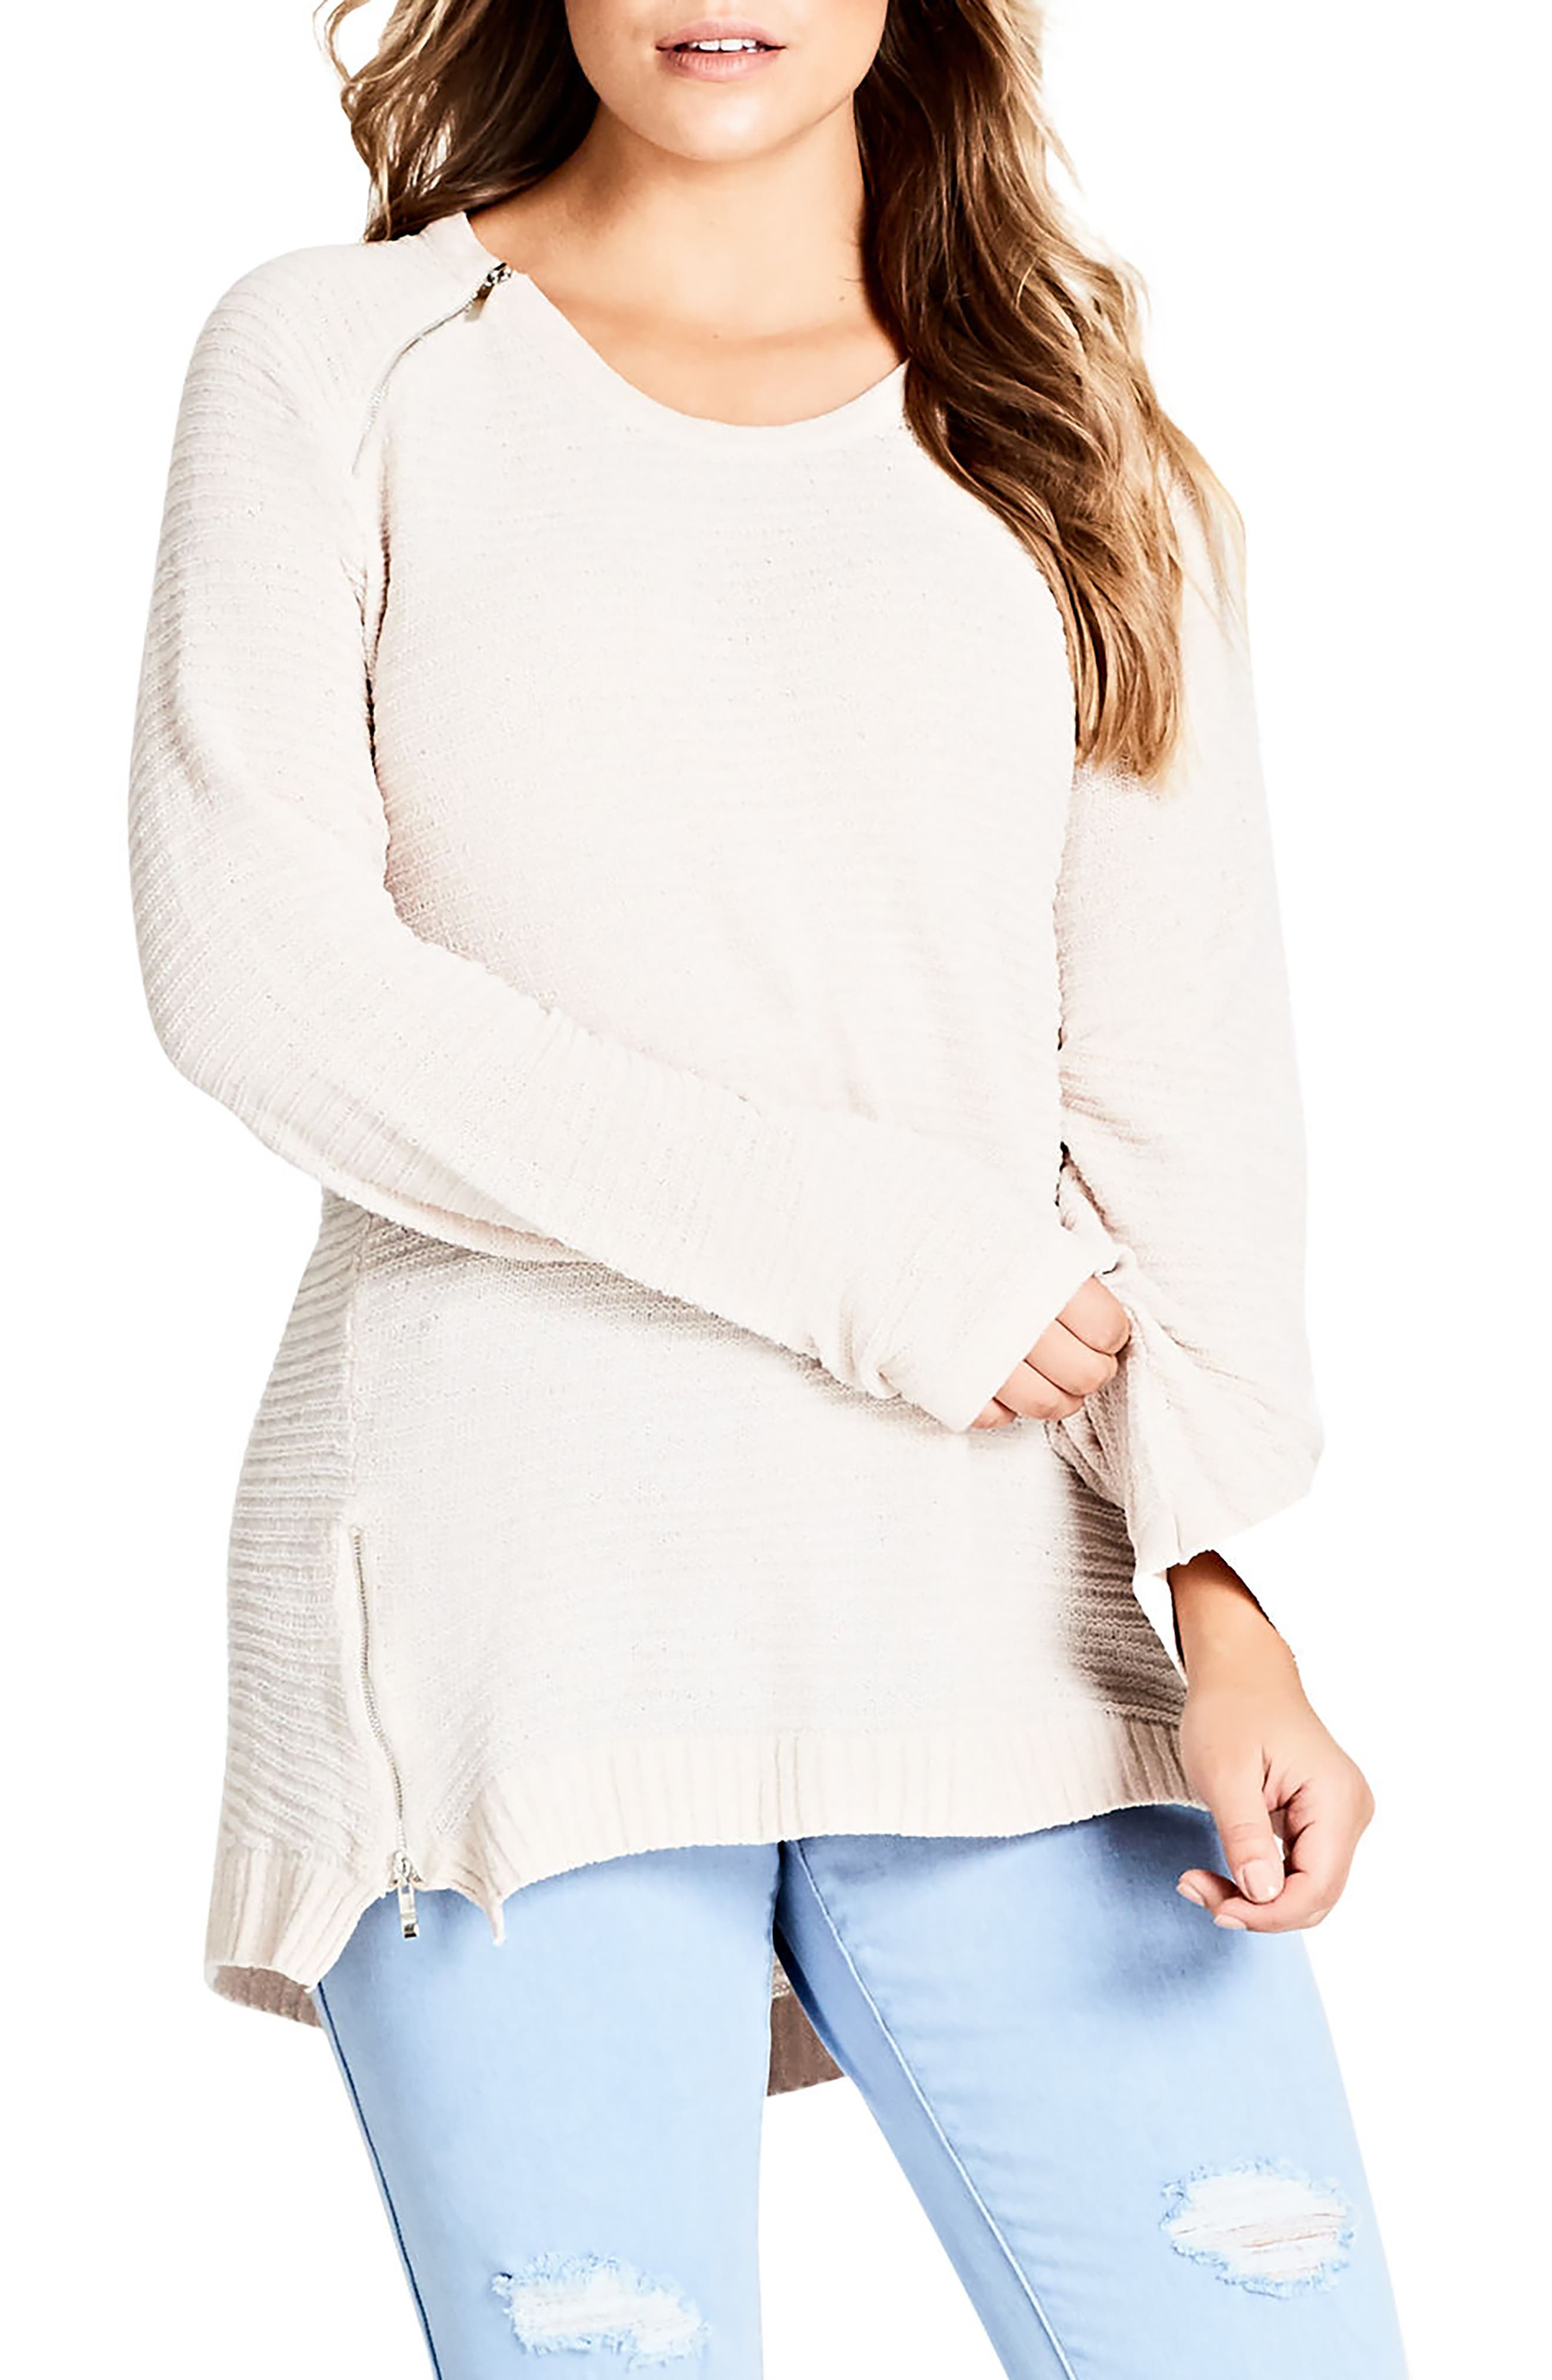 Alternate Image 1 Selected - City Chic Zip Detail Sweater (Plus Size)